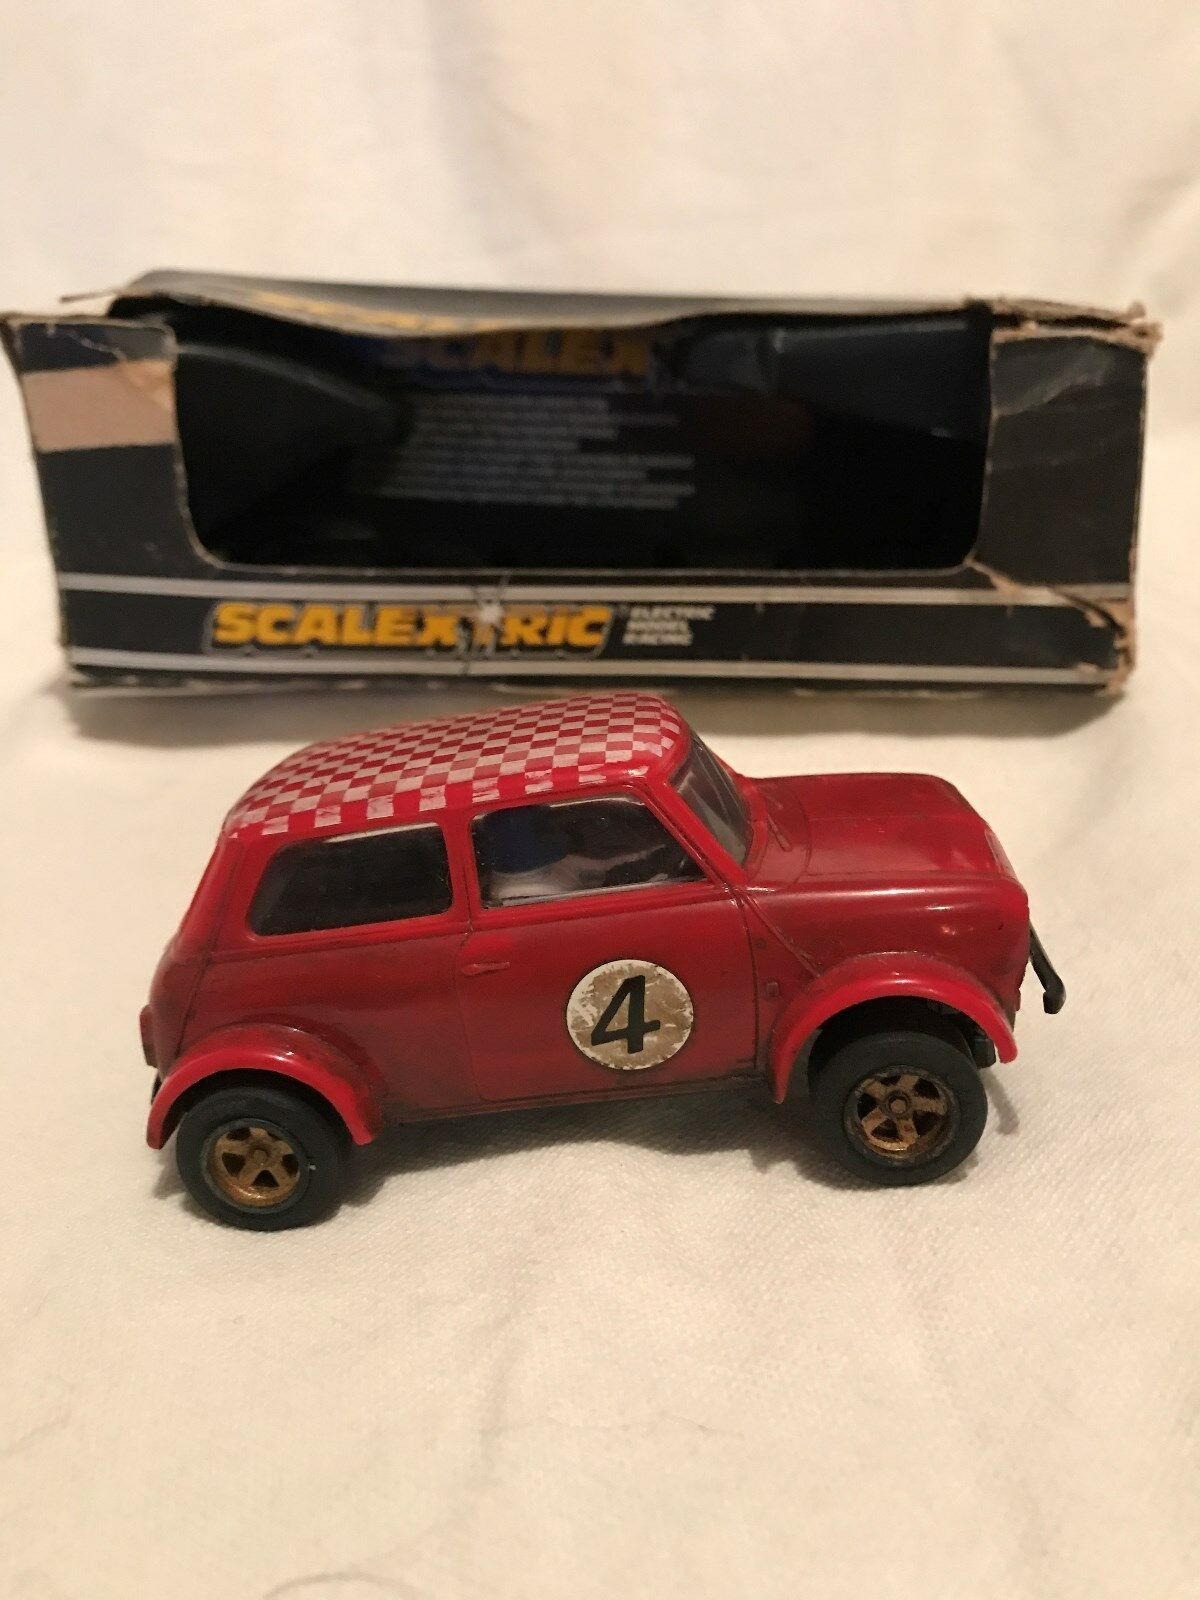 Vintage Scalextric Car Mini 1275 GT Rally Special. C122 Red Slot Car. No 4